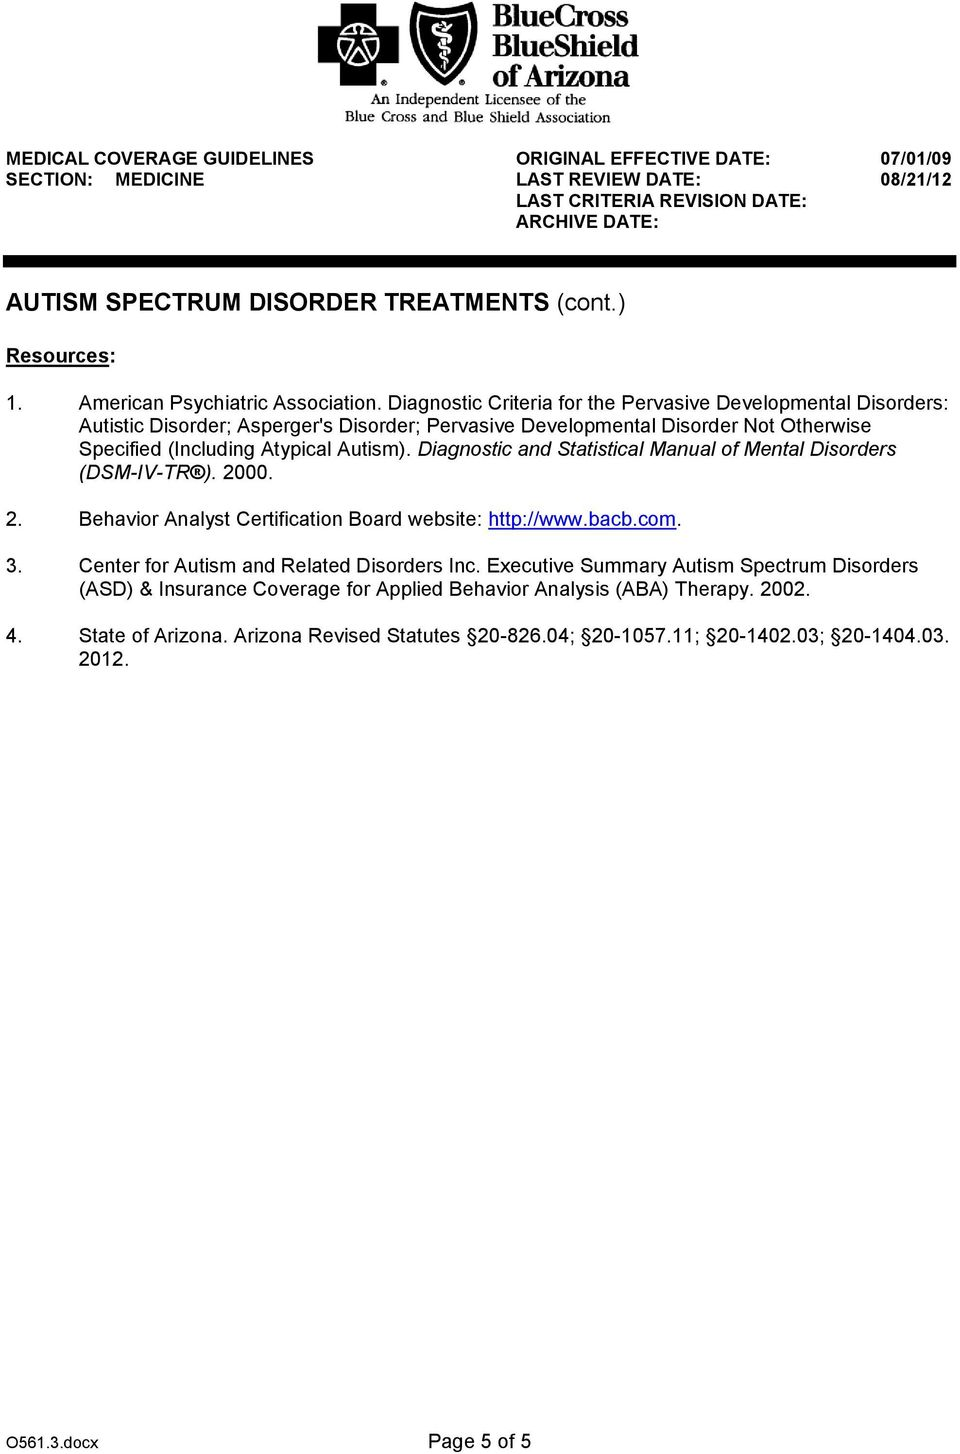 (Including Atypical Autism). Diagnostic and Statistical Manual of Mental Disorders (DSM-IV-TR ). 2000. 2. Behavior Analyst Certification Board website: http://www.bacb.